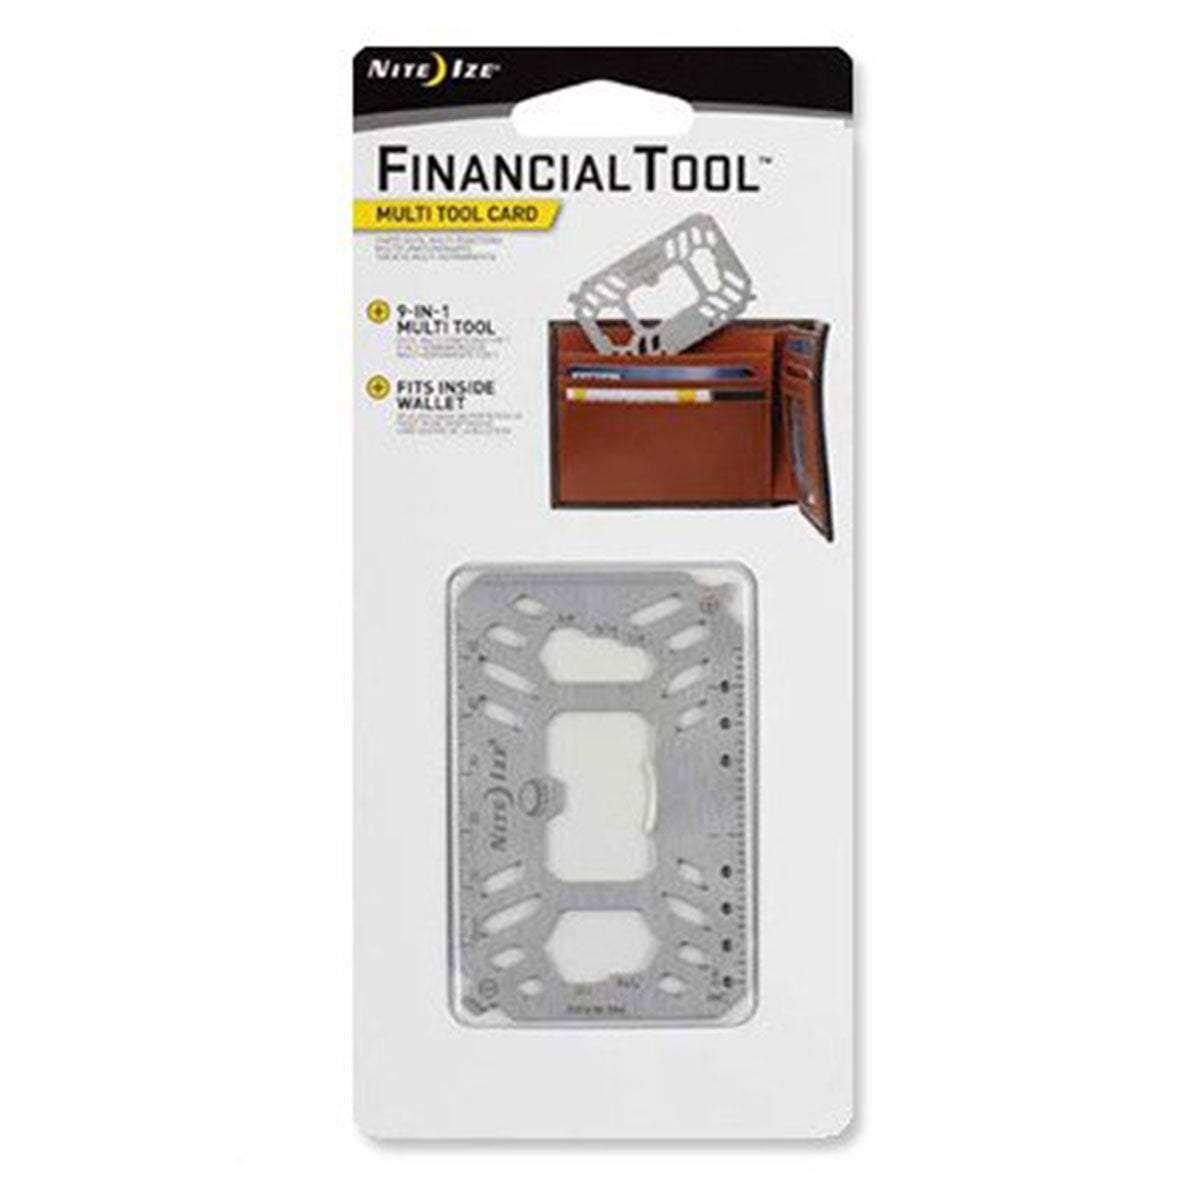 Nite Ize Financial Tool Multi Tool Card Stainless | UKMC Pro